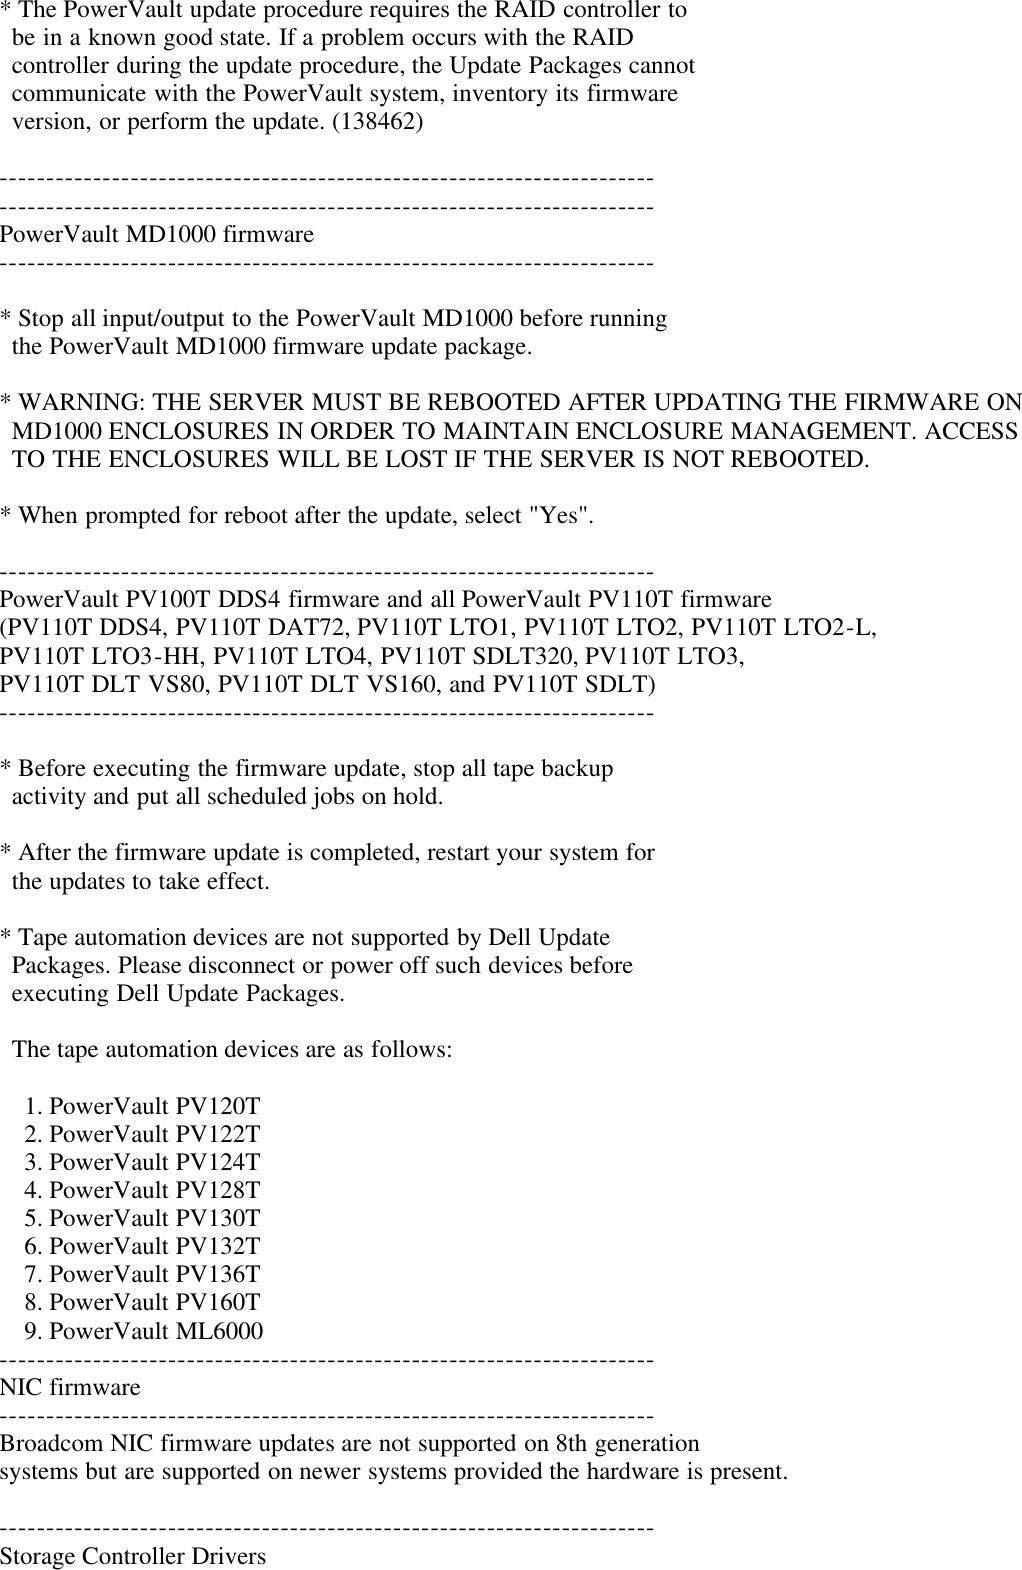 Dell Update Packages Version 6 4 Owners Manual Readme For